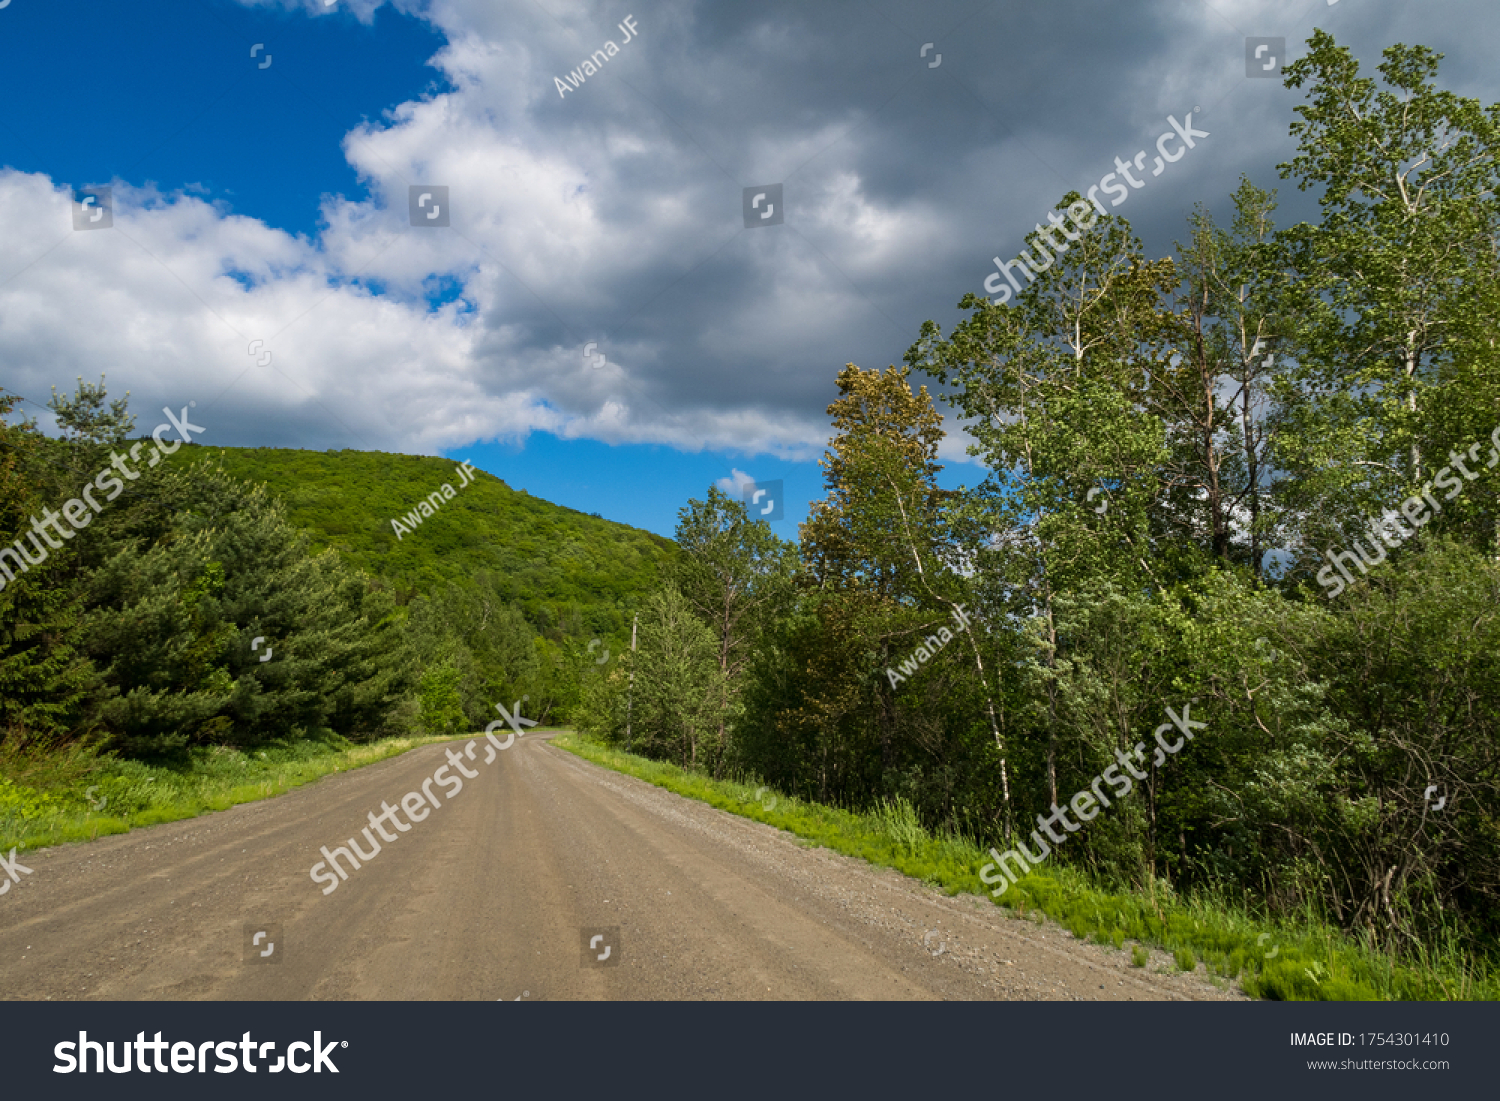 stock-photo-view-of-a-scenic-road-in-que